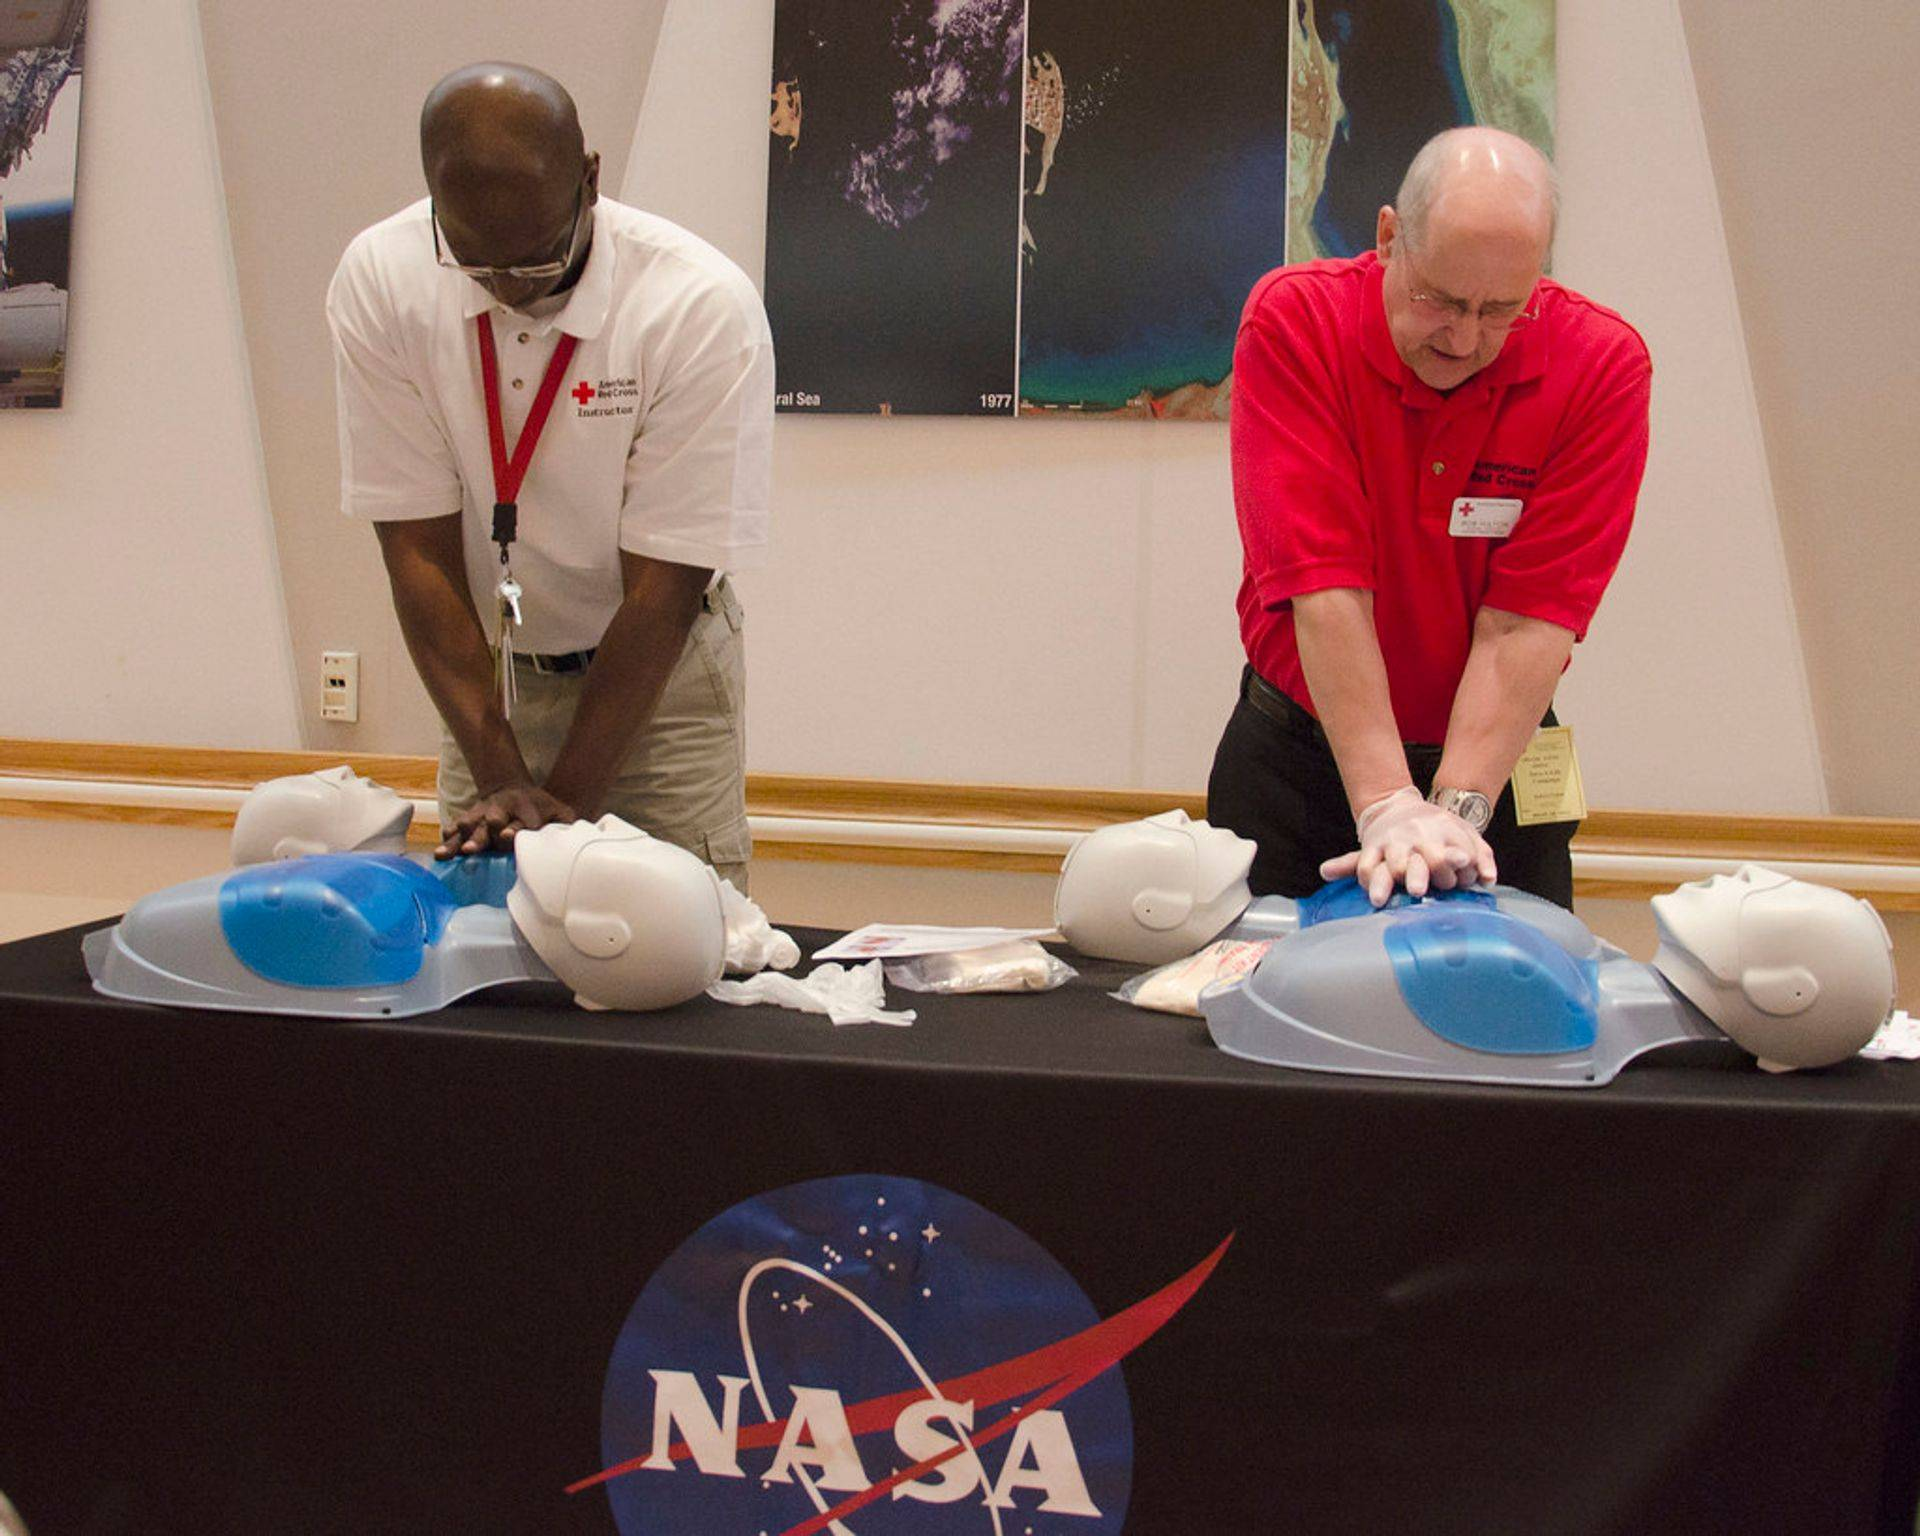 CPR training crucial to life saving, especially with aging population.